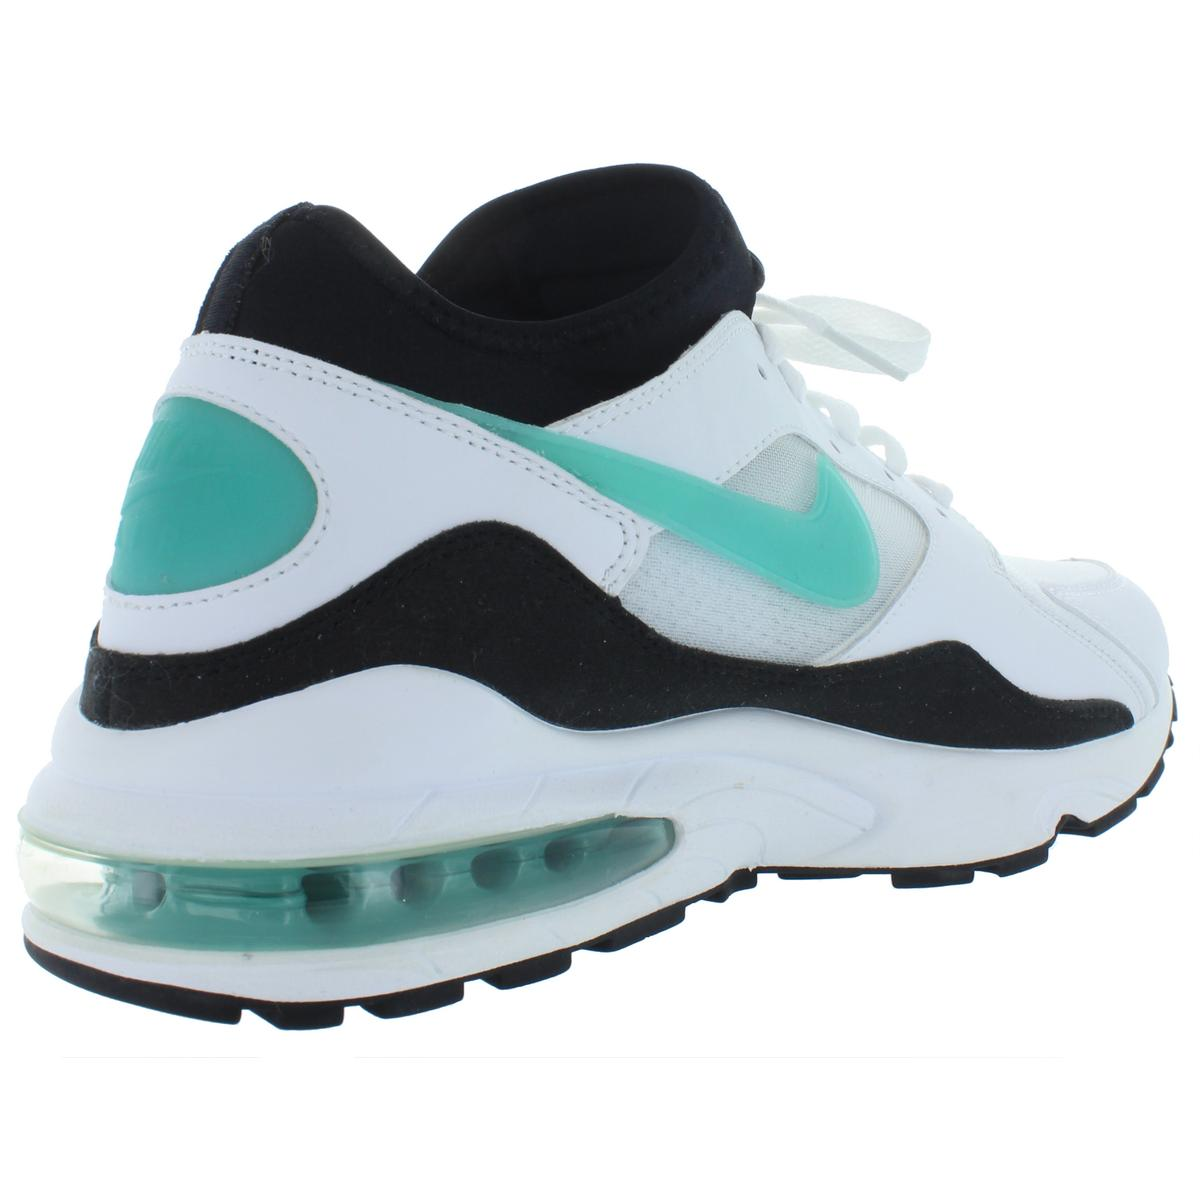 b5dc590e2b Nike Air Max 93 OG Dusty Cactus White Black Sz 11.5 306551-107 for ...